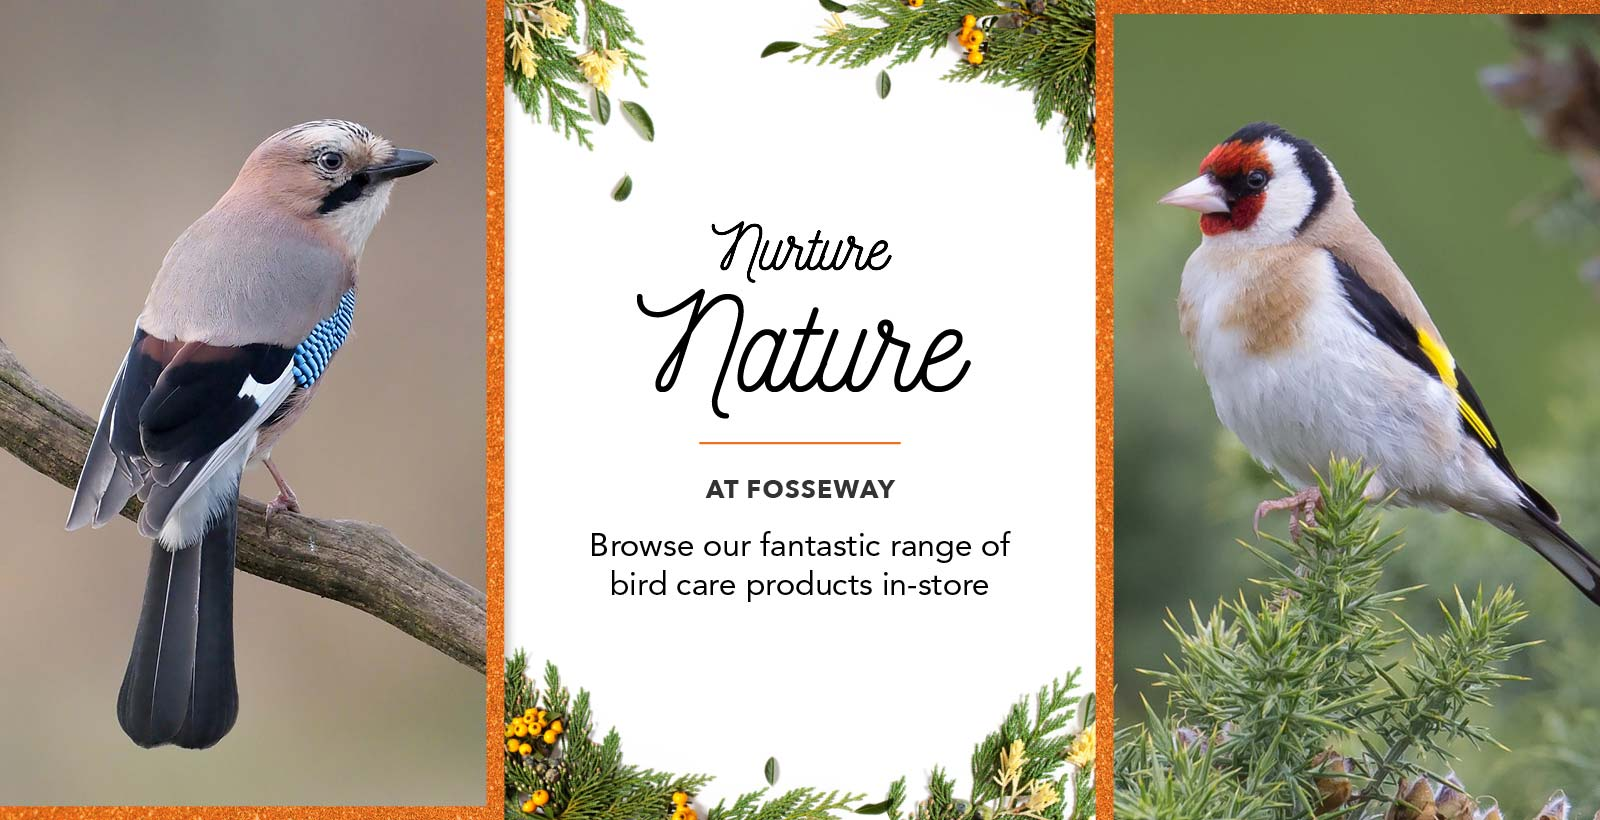 Bird Care Products at Fosseway